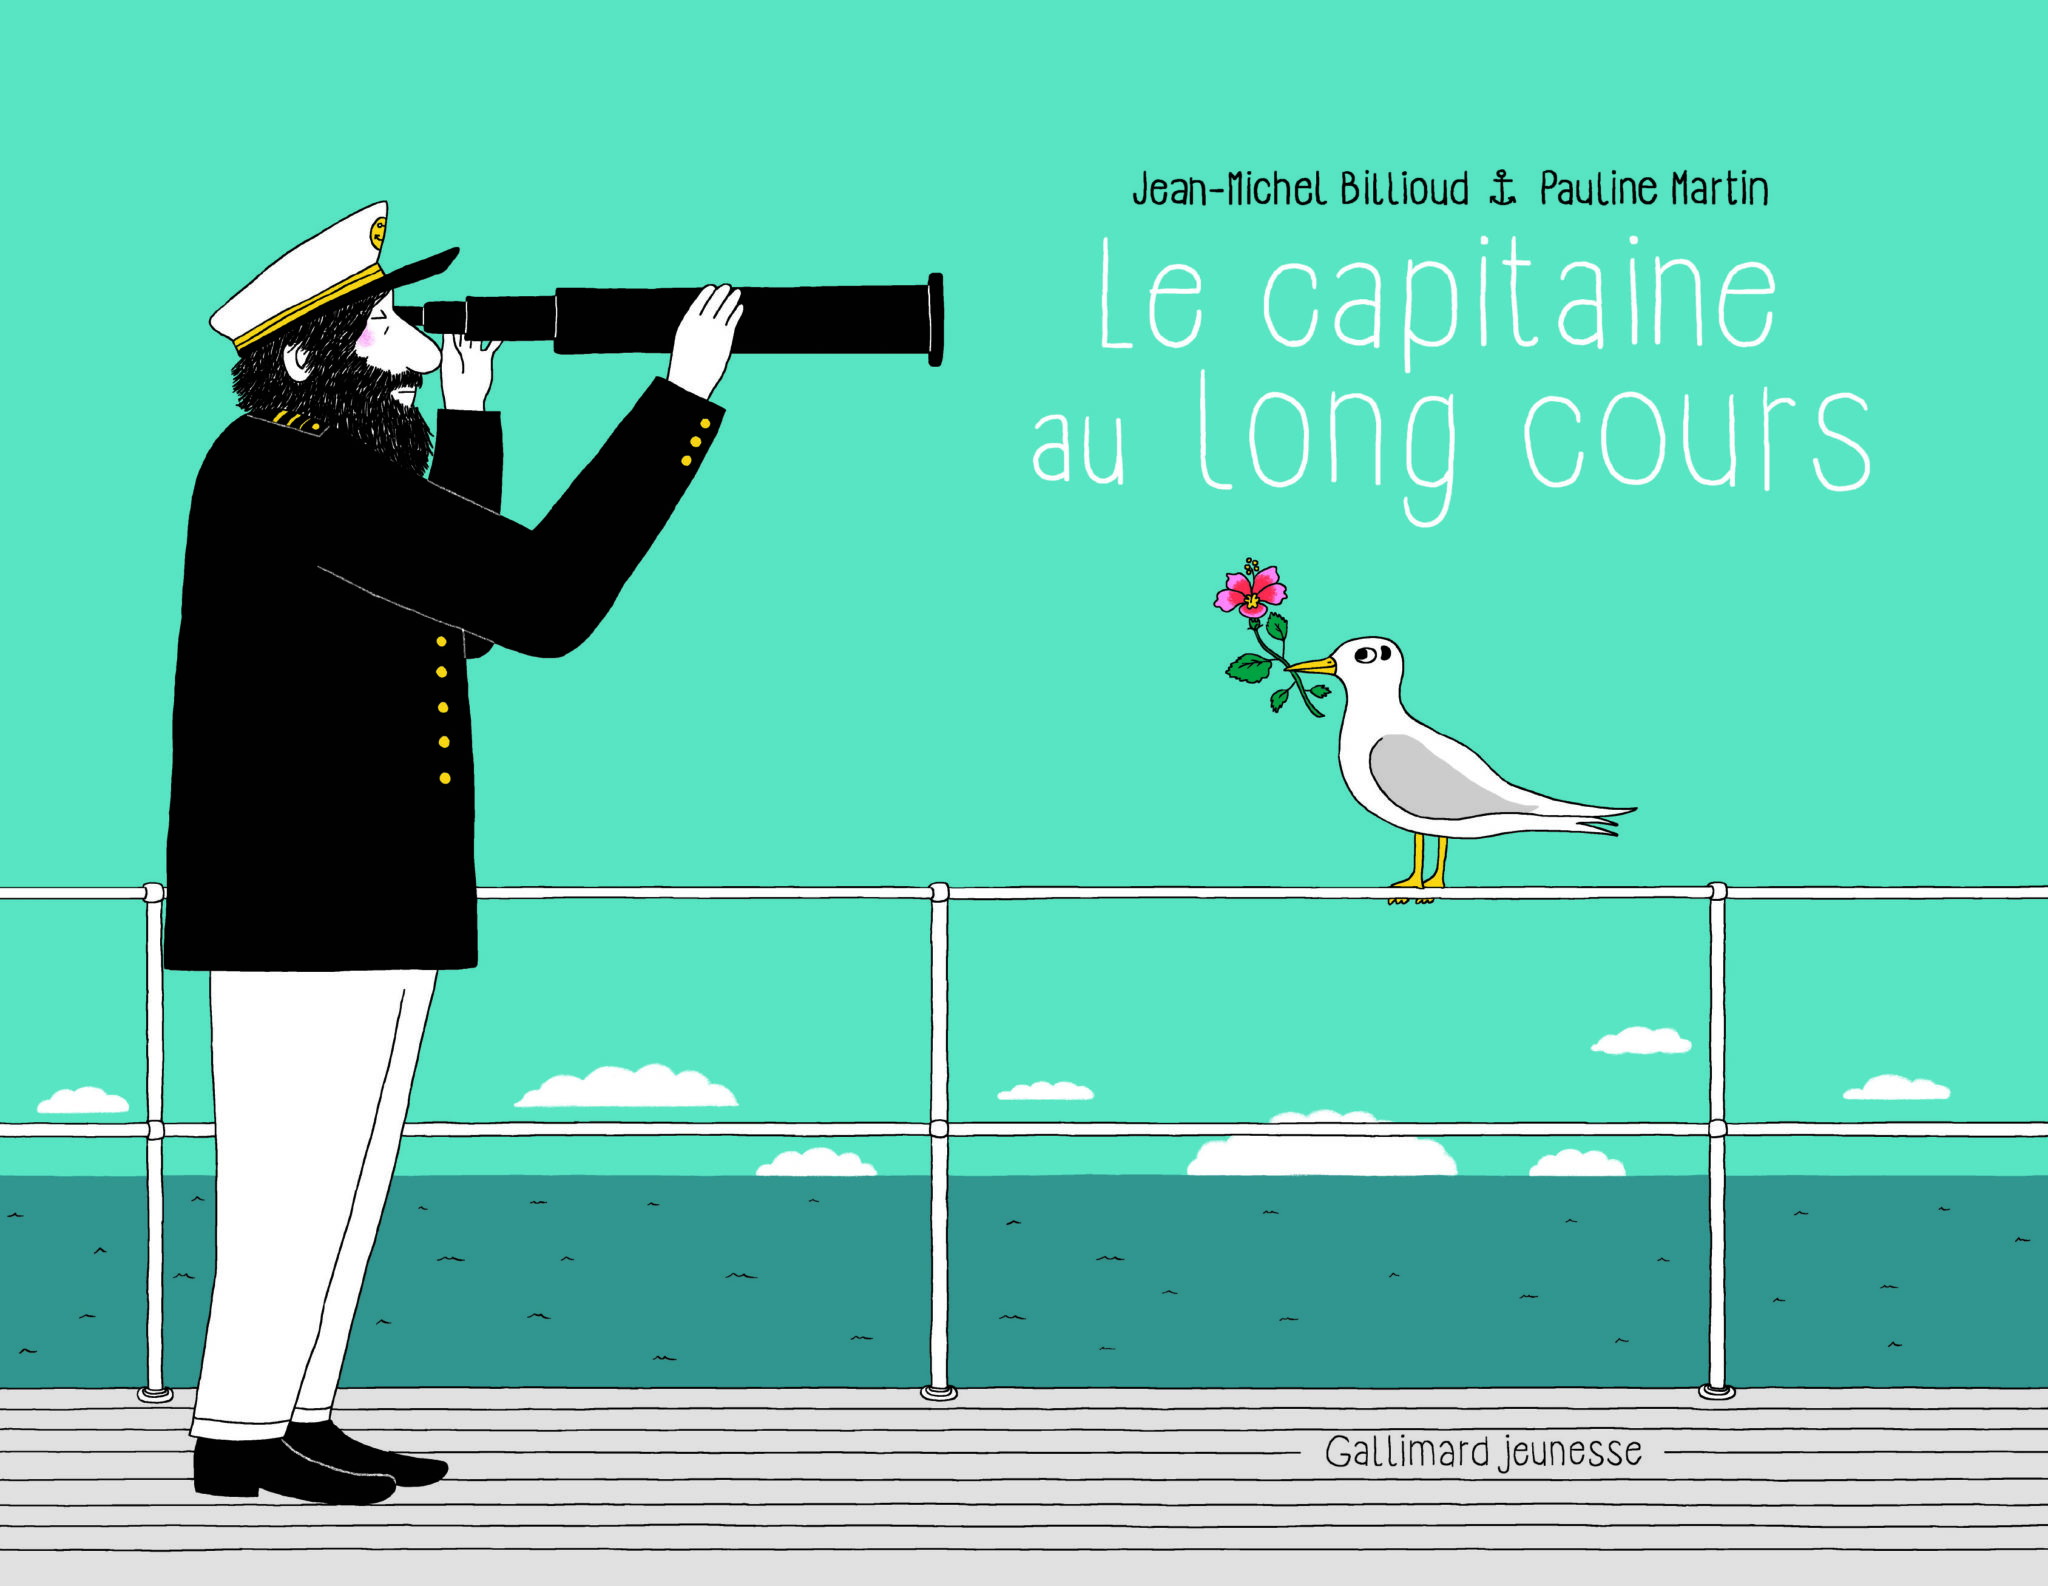 Le Capitaine au long cours, Jean-Michel Billioud, ill. Pauline Martin, Gallimard Jeunesse Livre illustré